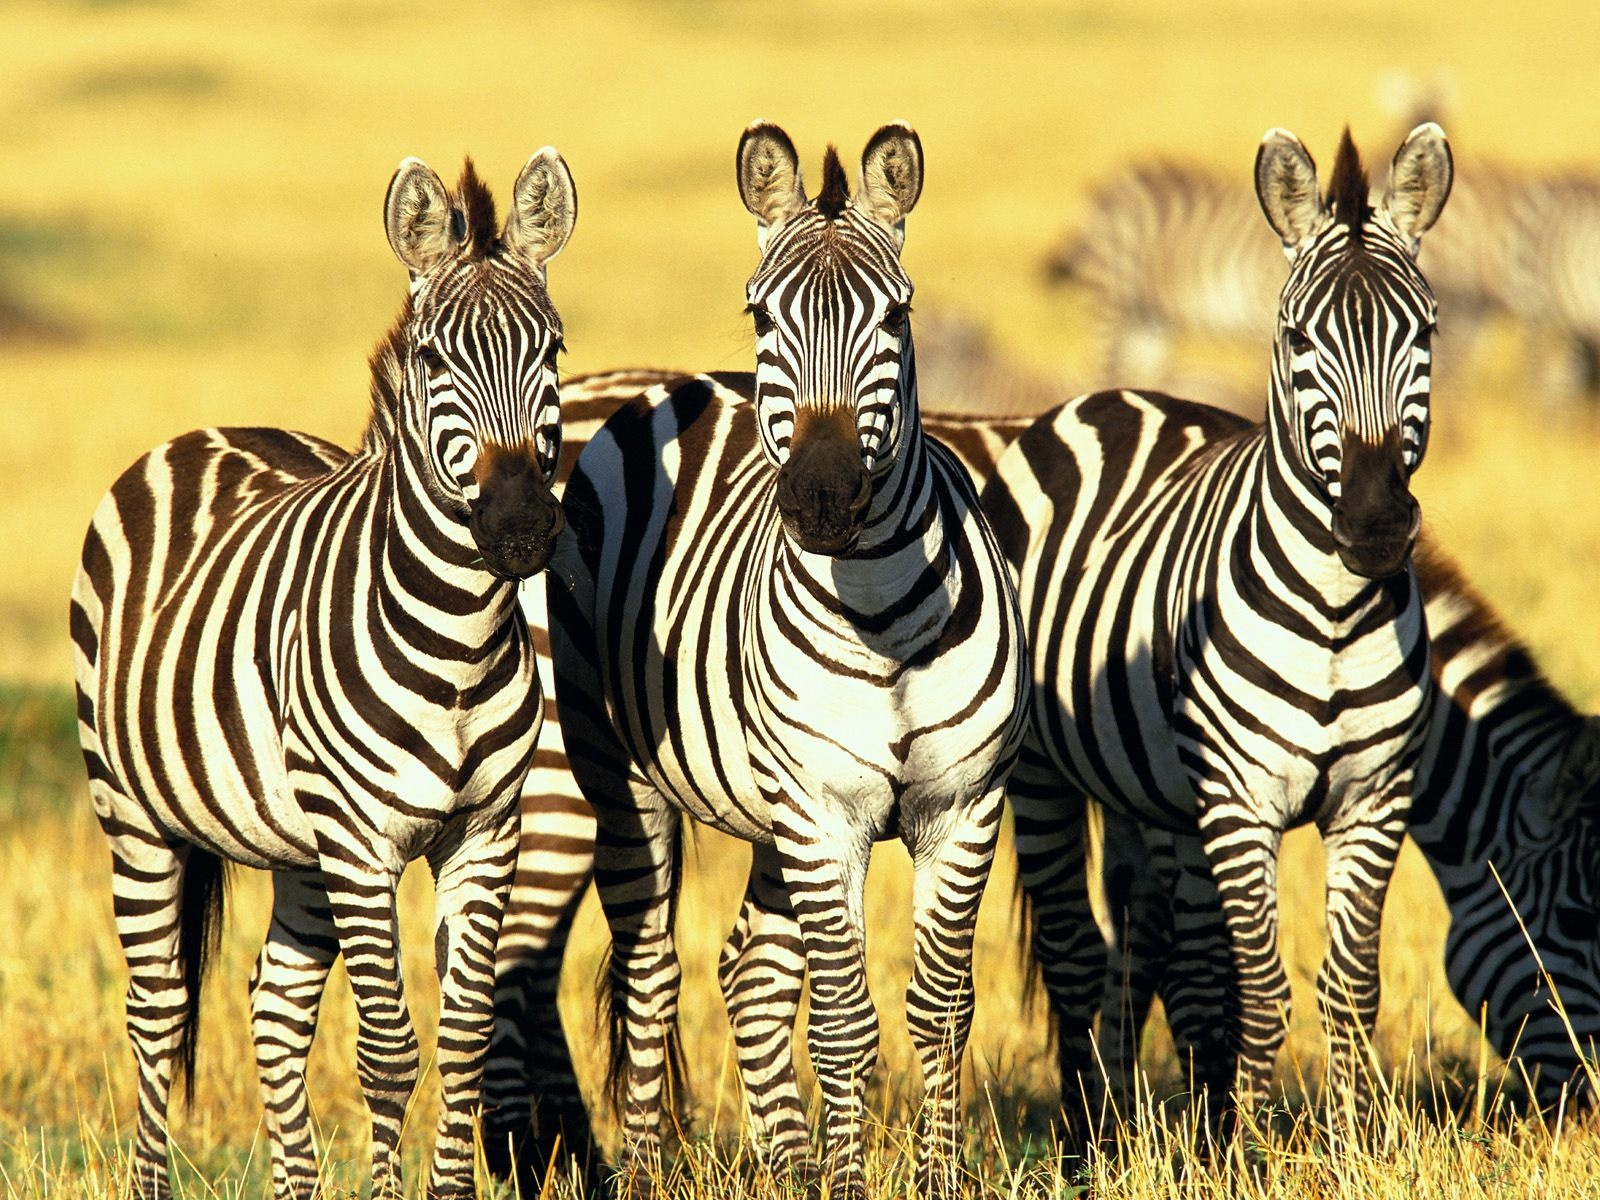 Related Wallpapers. Zebra ...